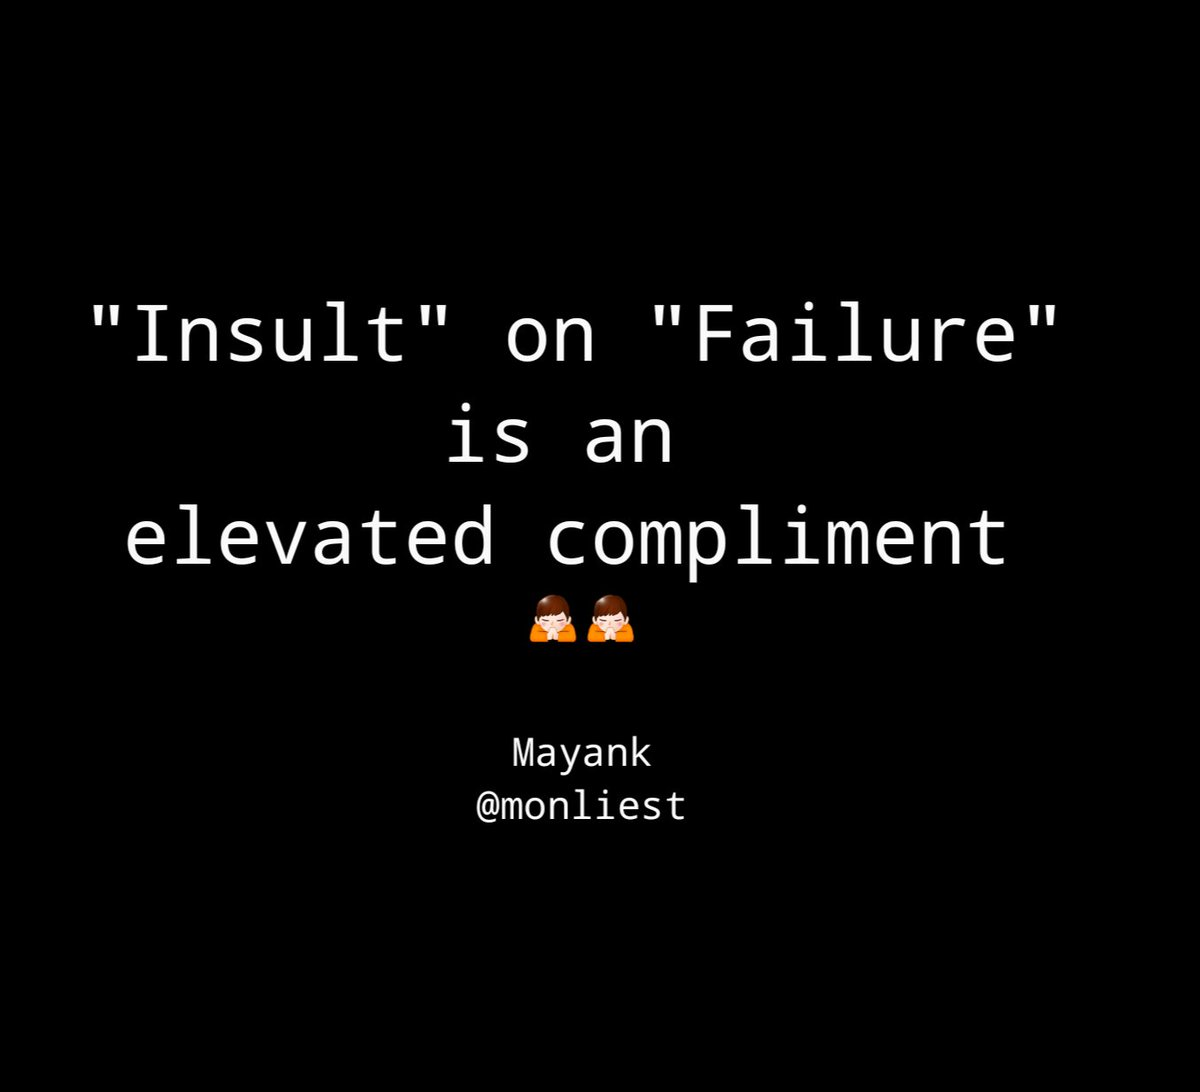 #Insult on #failure is a greatest #compliment  #lifequotes #quoteoftheday #insult #motivationalquotes #motivation #patience #compliments<br>http://pic.twitter.com/EOxjnZB4oy